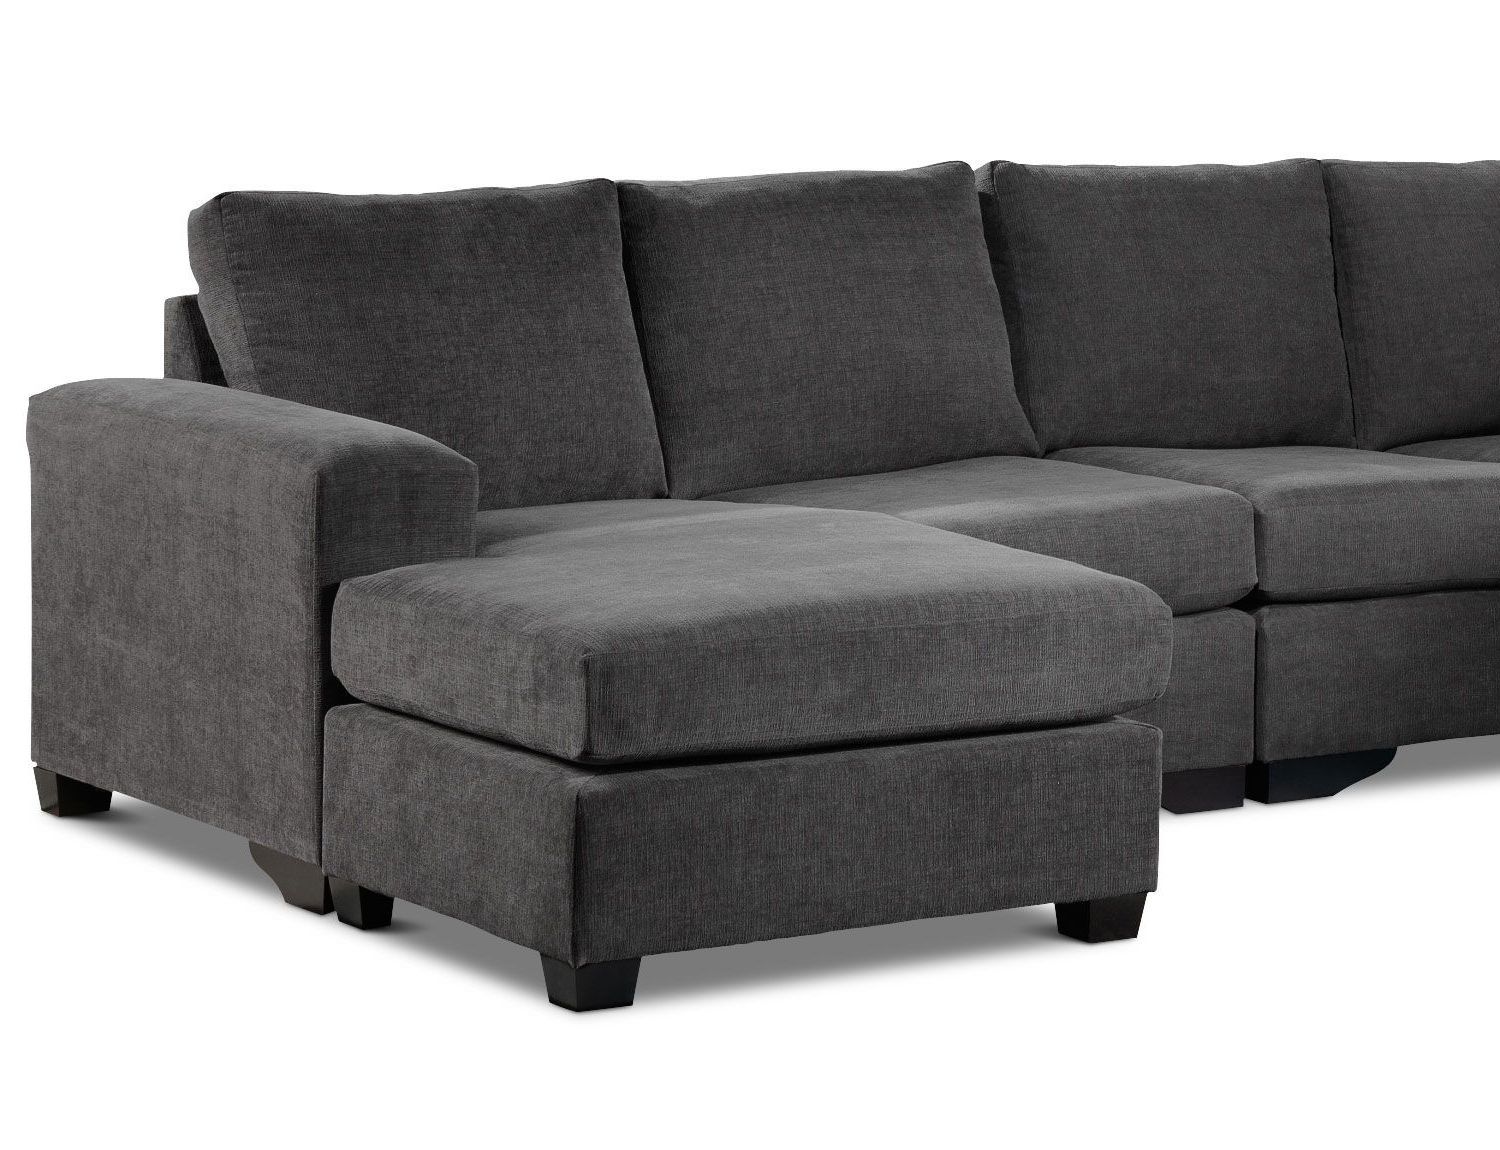 Well Known Leons Sectional Sofas Inside Trudy Upholstery 4 Pc. Sectional – Leon's, $1, (View 2 of 15)